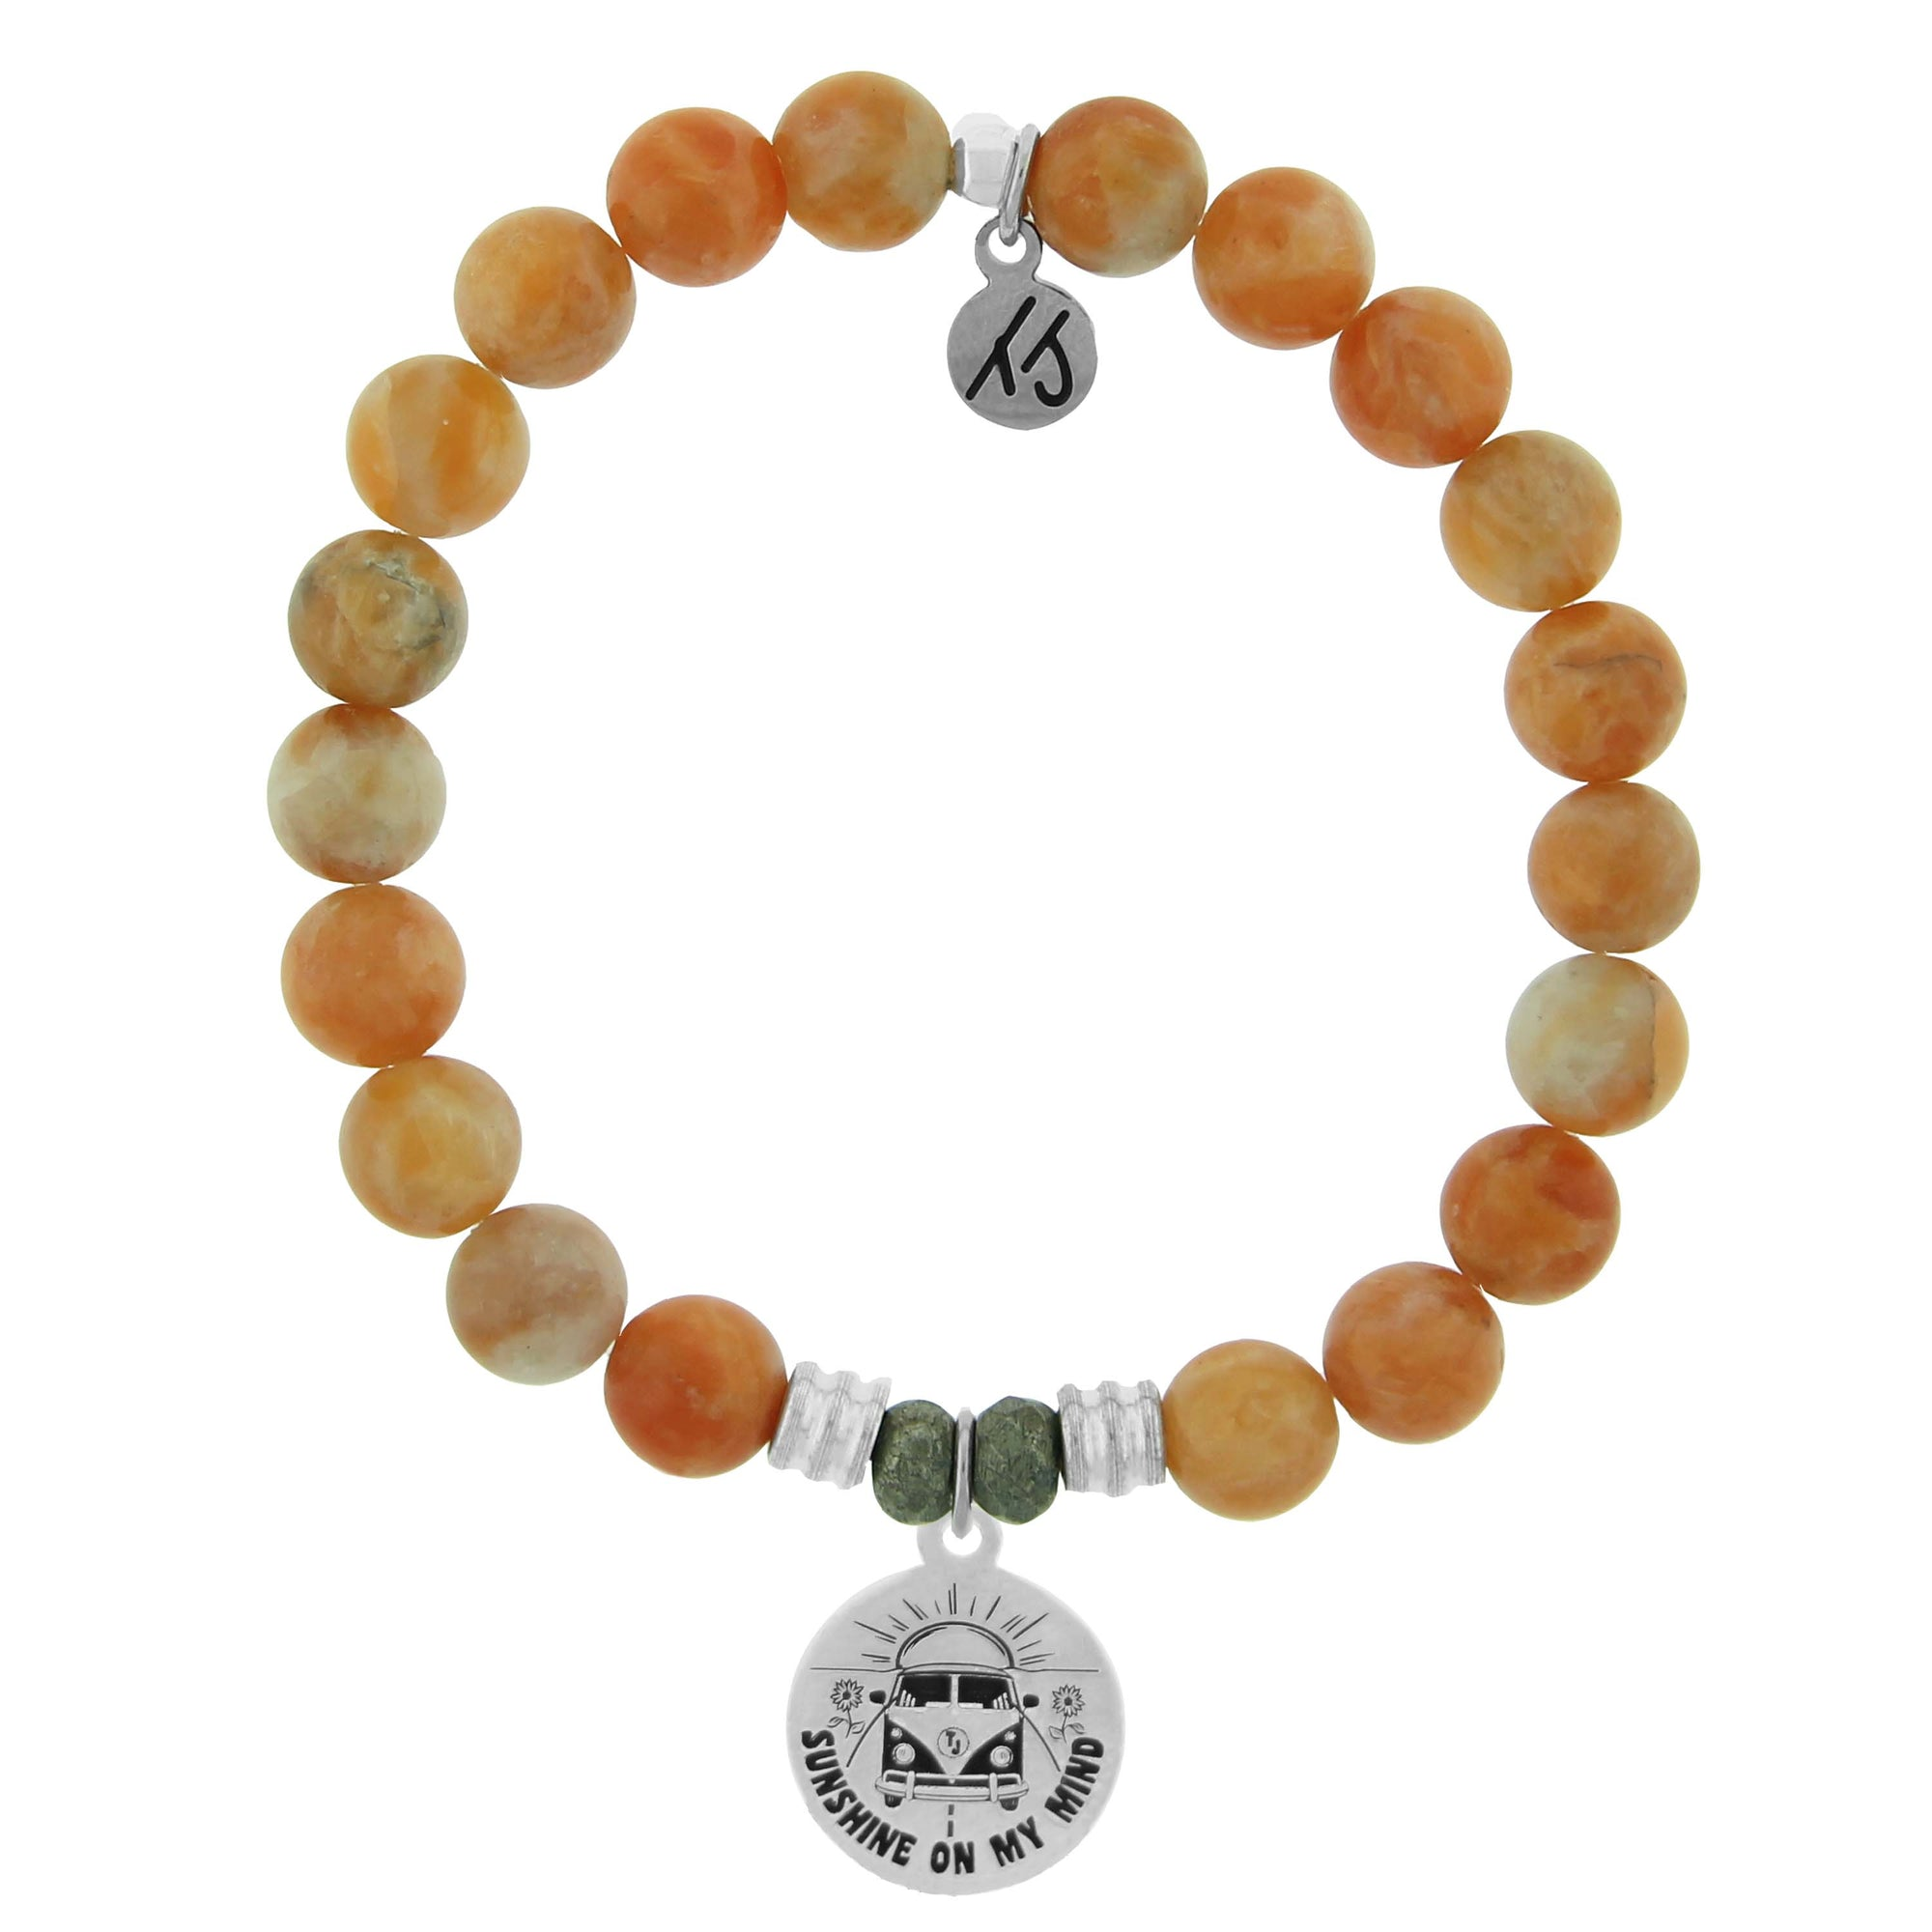 Orange Calcite is known as the stone of drive and motivation.  Life's a Journey Sterling Silver Charm- Seek what makes your soul happy and enjoy life's ride. Through life's twists, turns and different routes know that it all directs you to your destiny. You steer the path to your happiness.